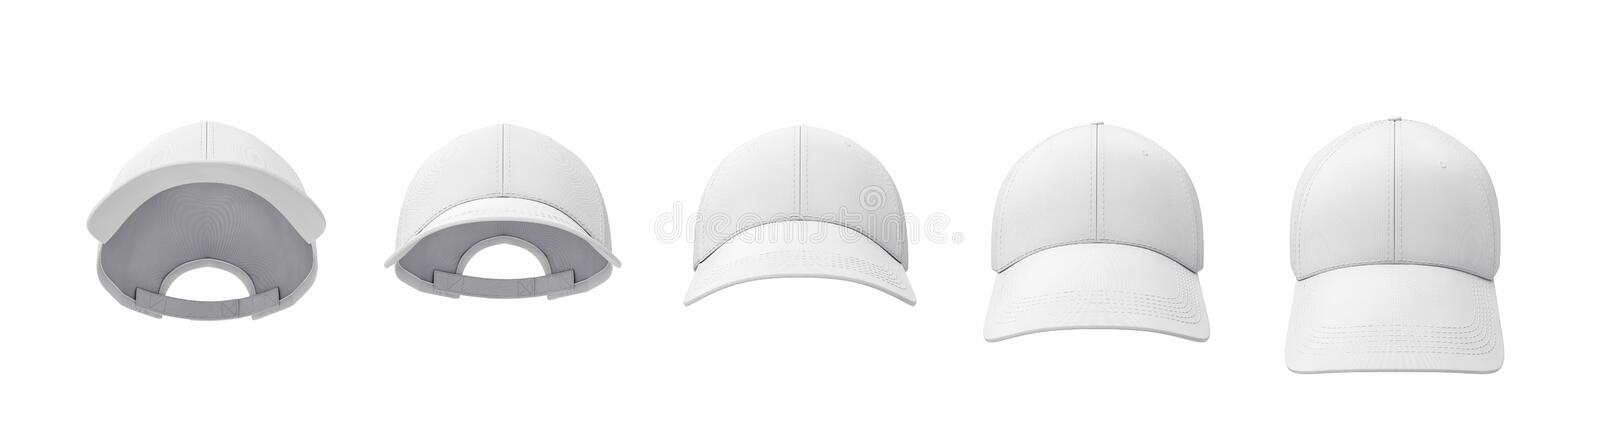 3d rendering of five white baseball caps shown in one line in a front view but in different angles. stock illustration